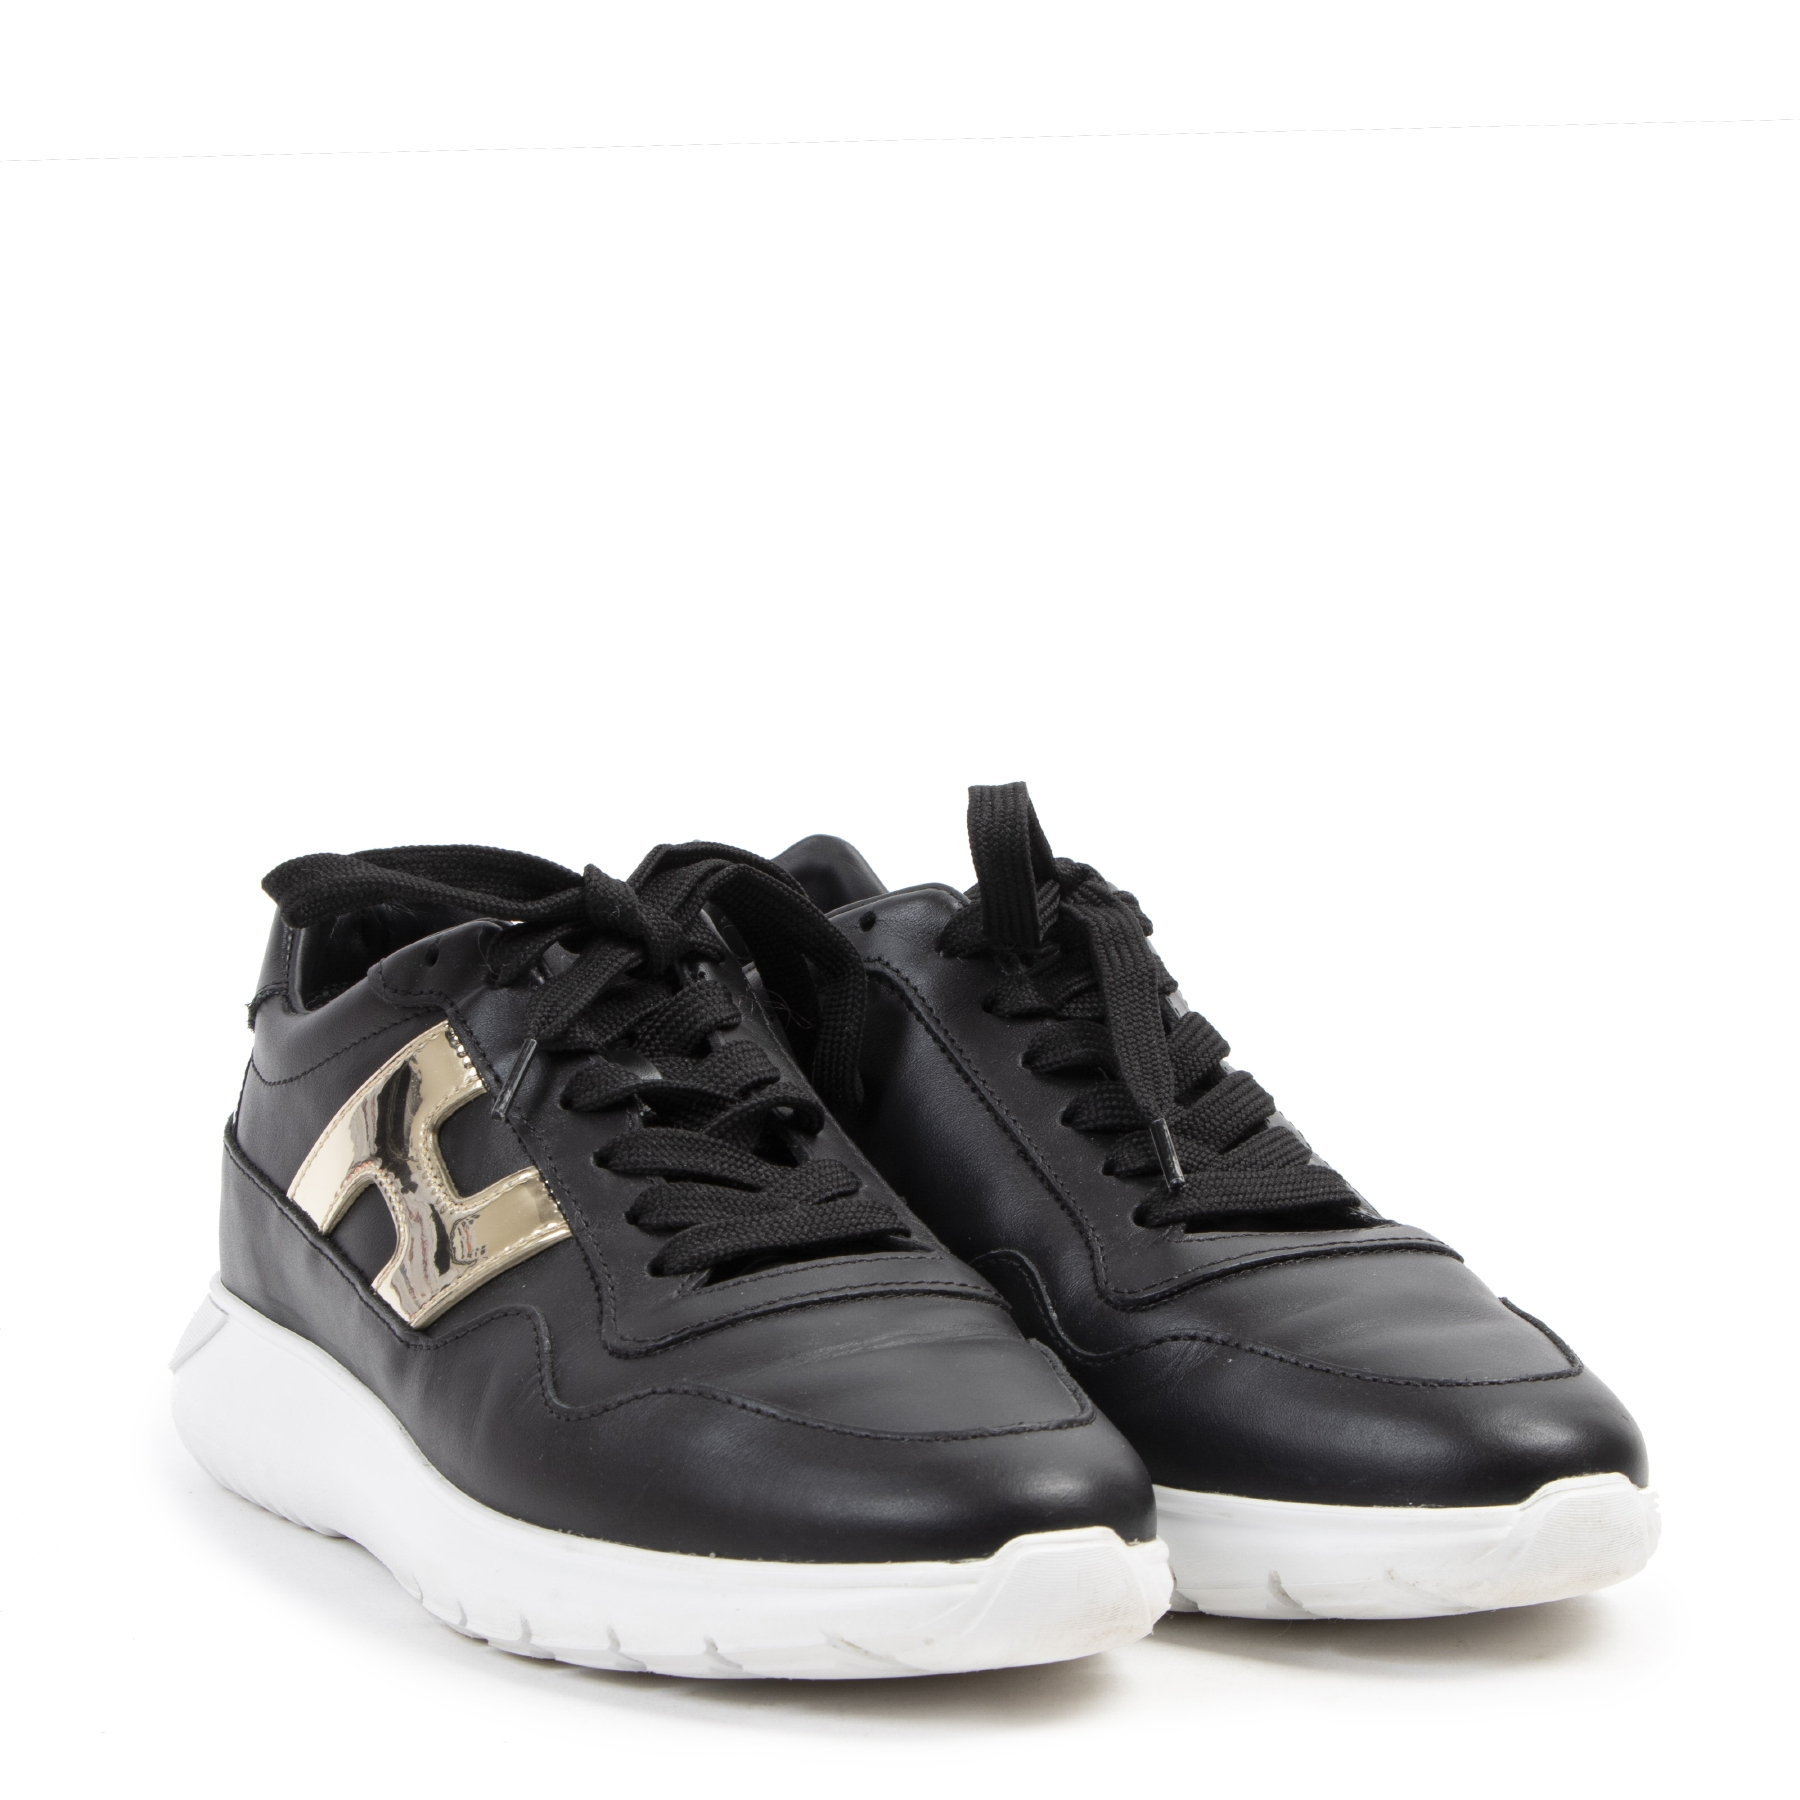 Authentieke tweedehands vintage Hogan Black Interactive Low Top Sneakers - Size 40 koop online webshop LabelLOV